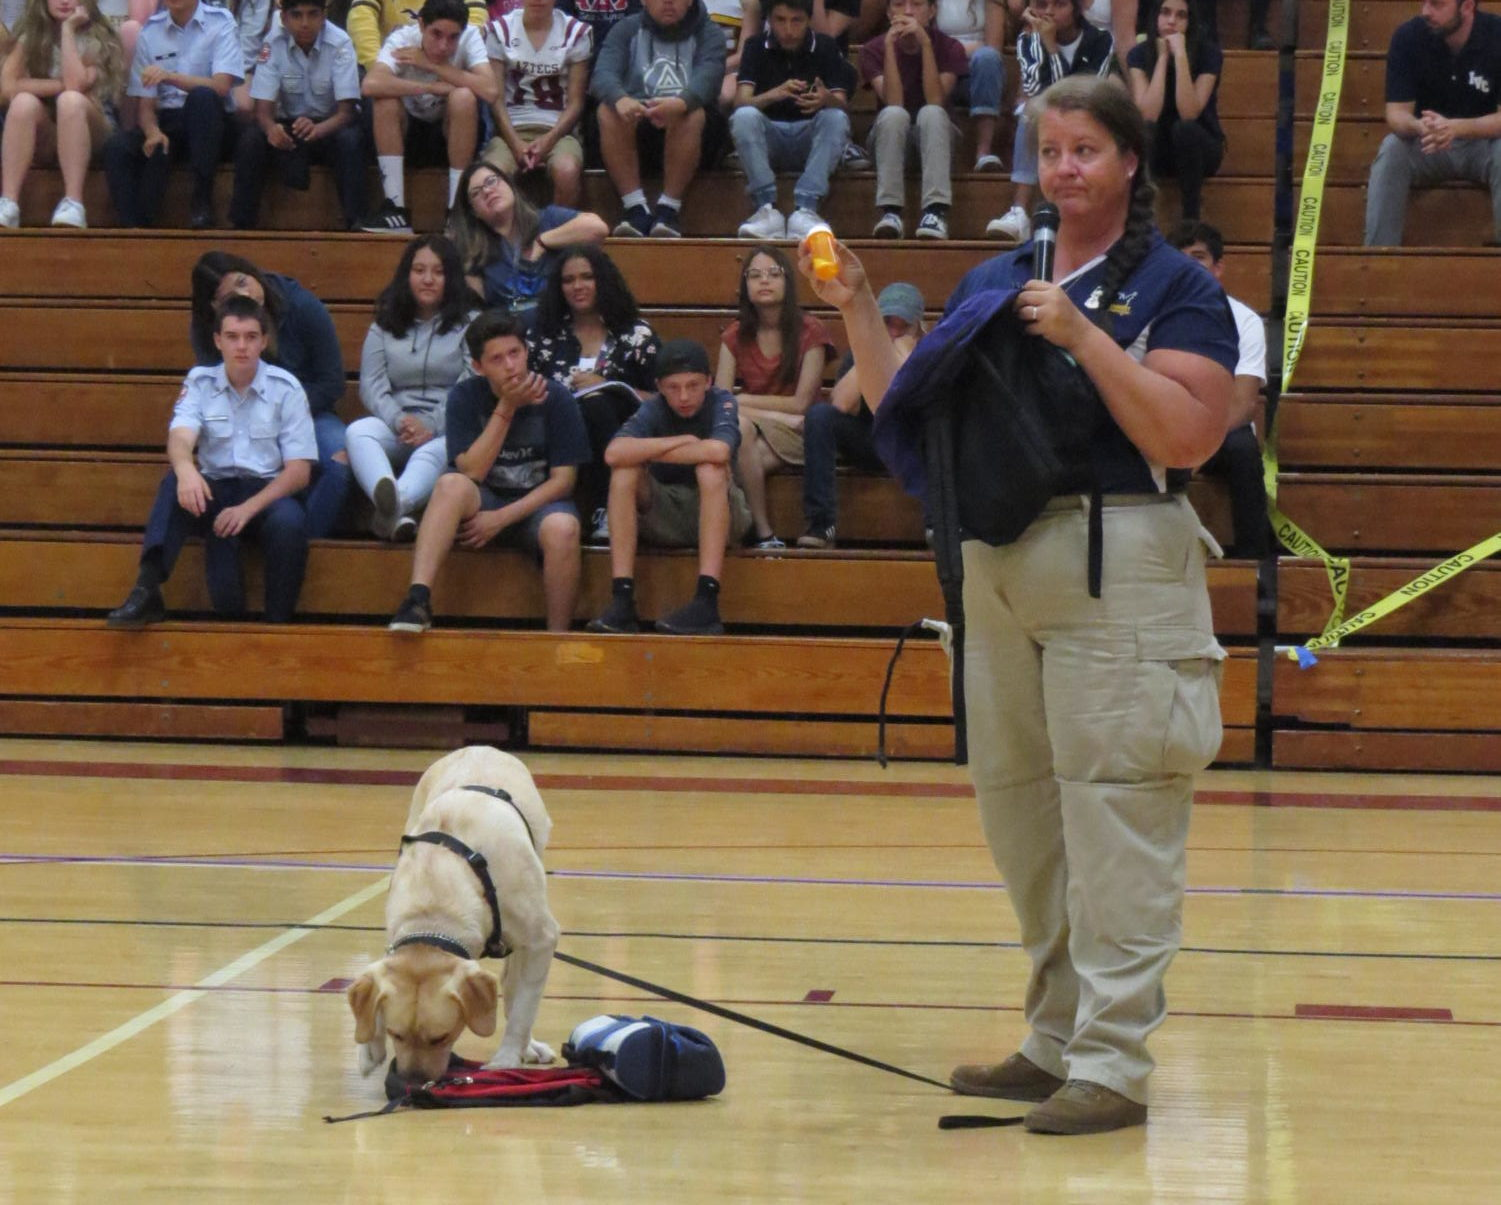 Tonya Anderson, with the help of Mia the yellow lab, find medications in an example backpack at the Drug Dog Assembly.